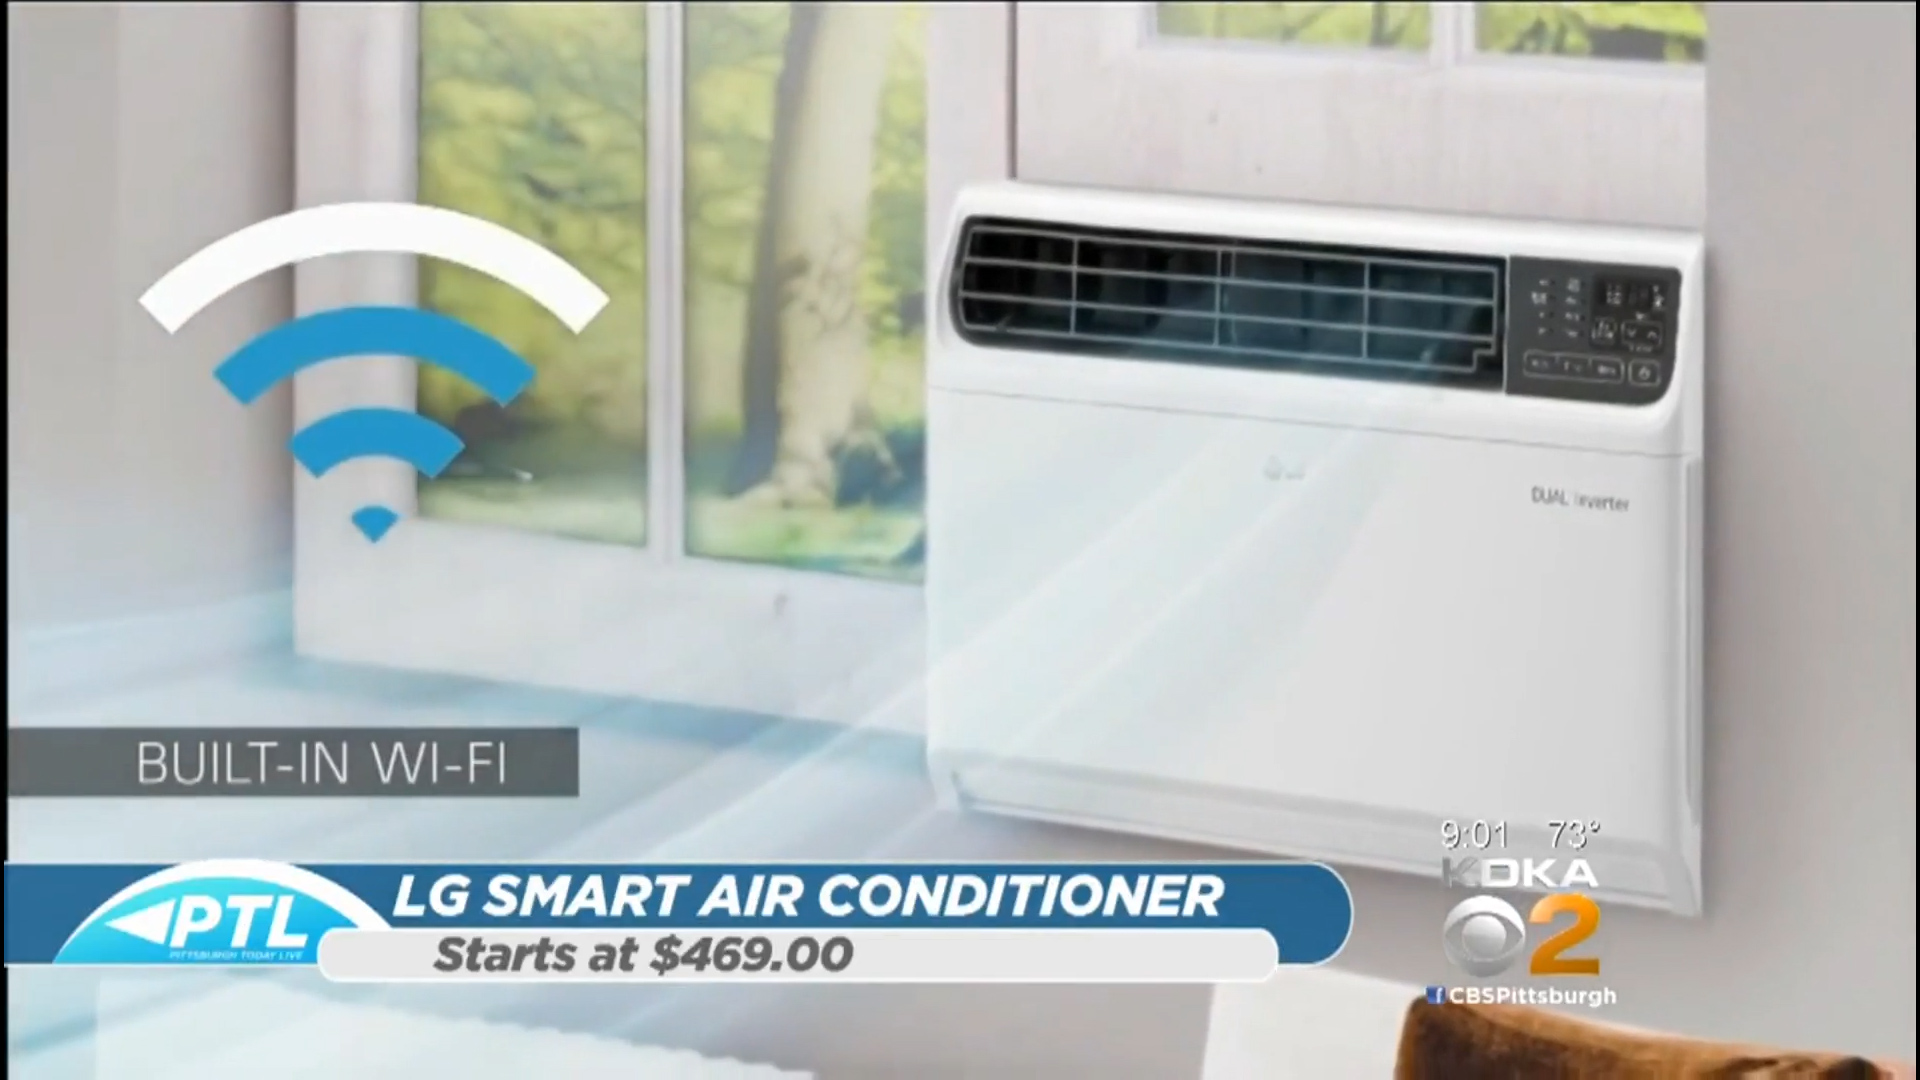 LG DUAL INVERTER SMART AIR CONDITIONER - Starts at $469.00Shop Now